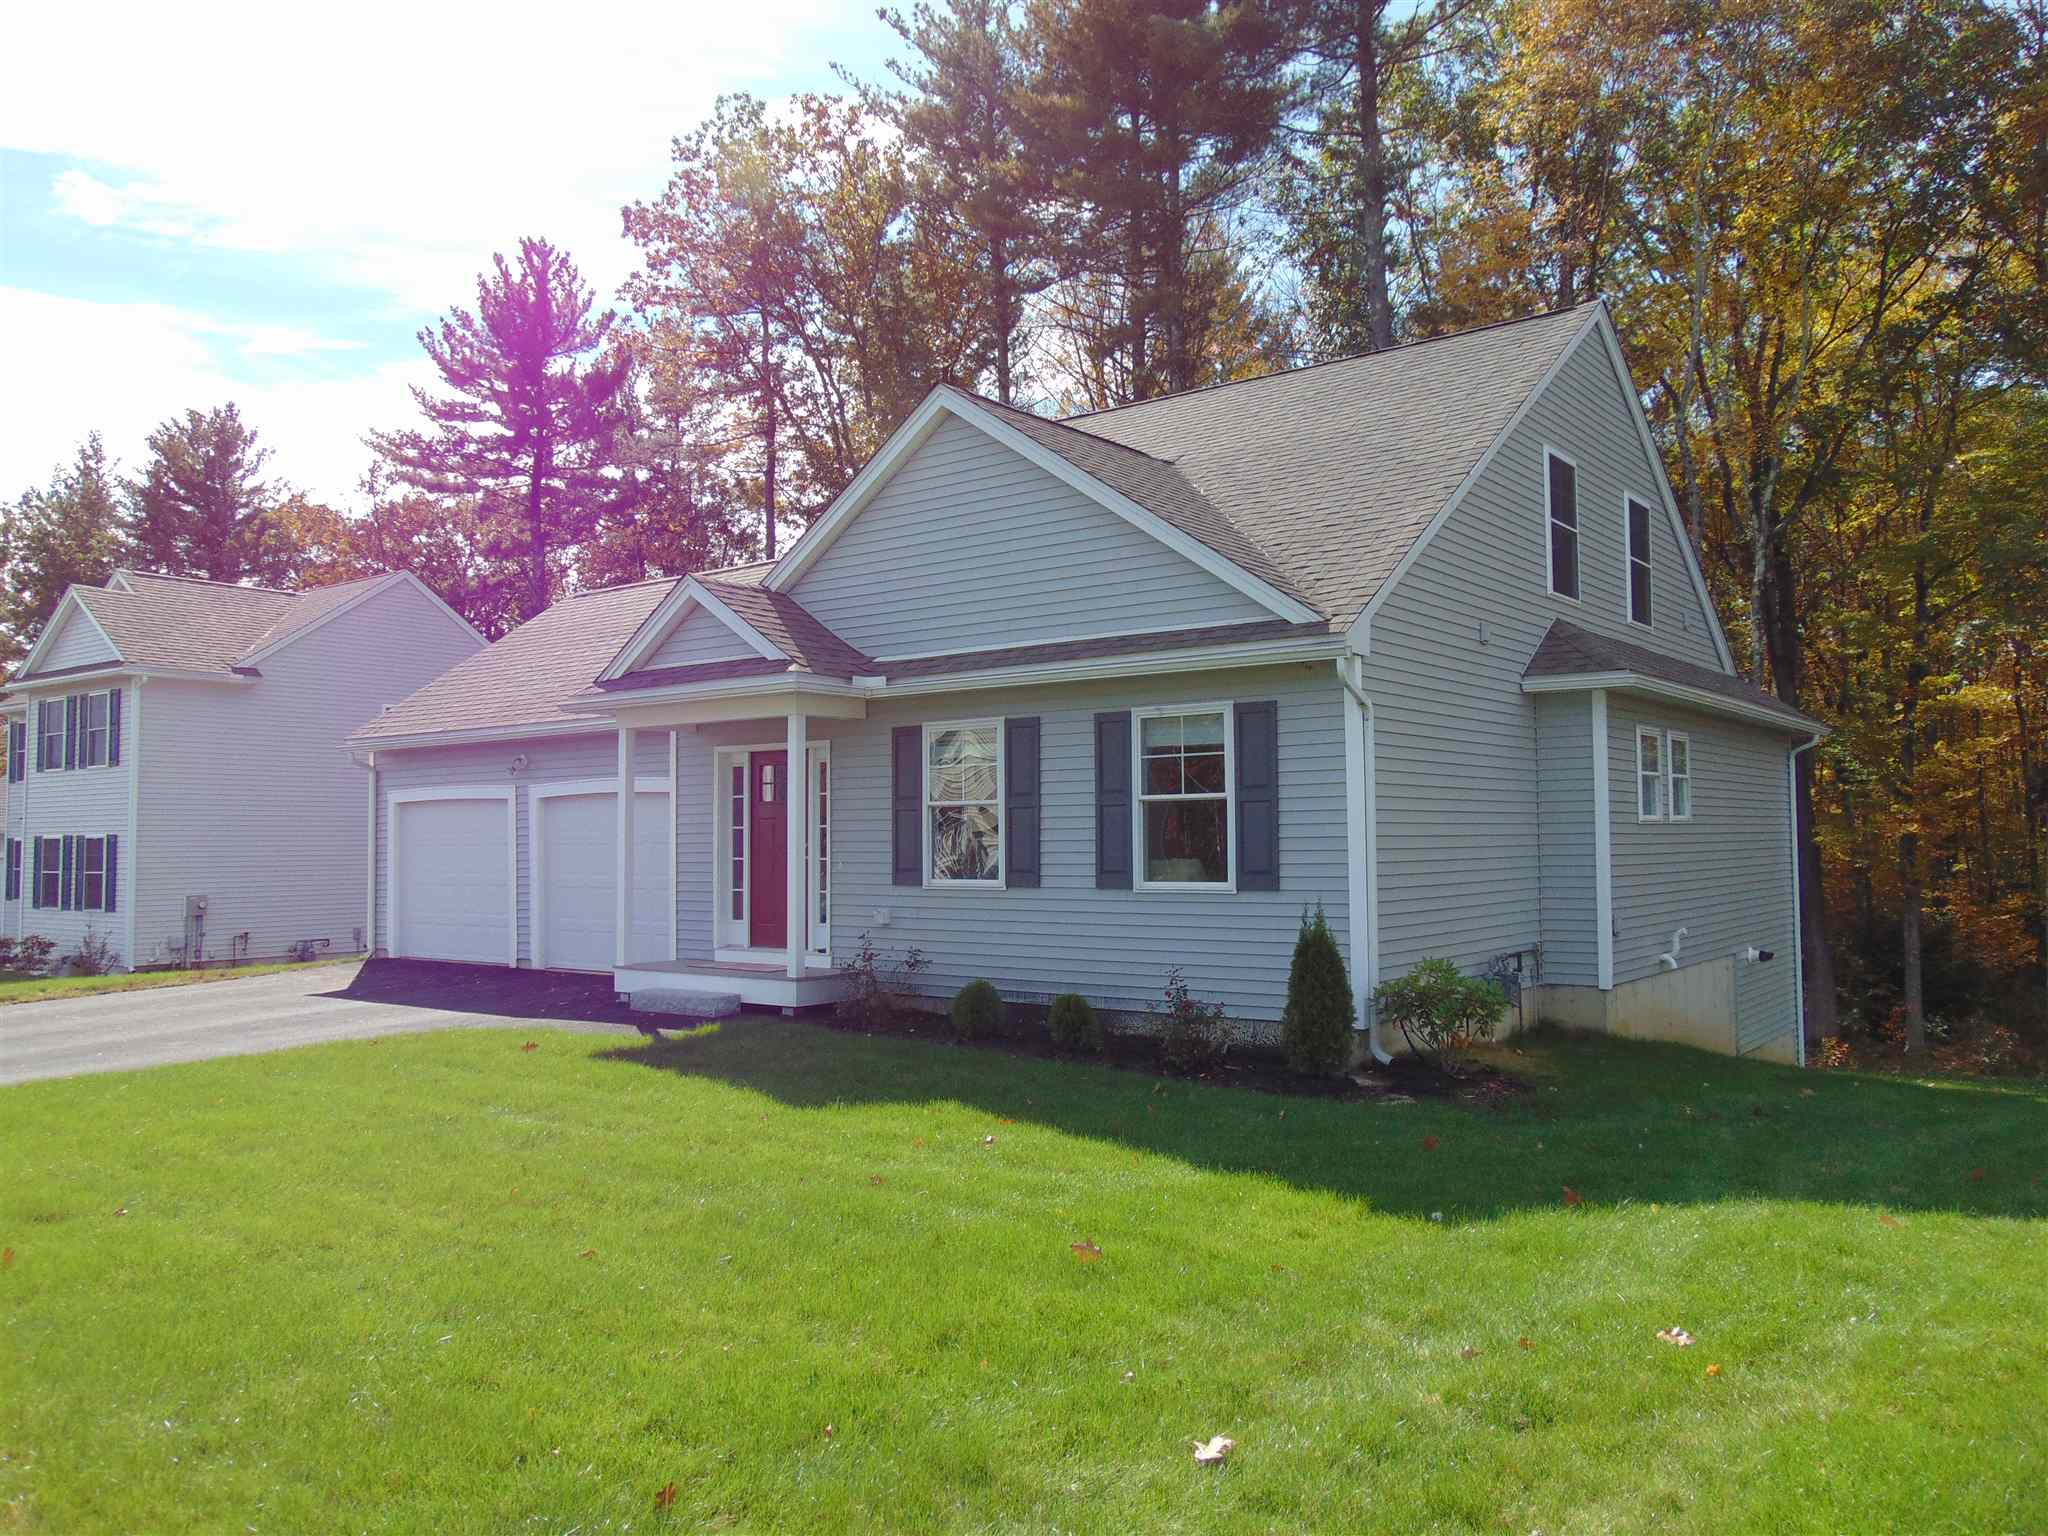 MLS 4820681: 62 West Meadow Court, Milford NH